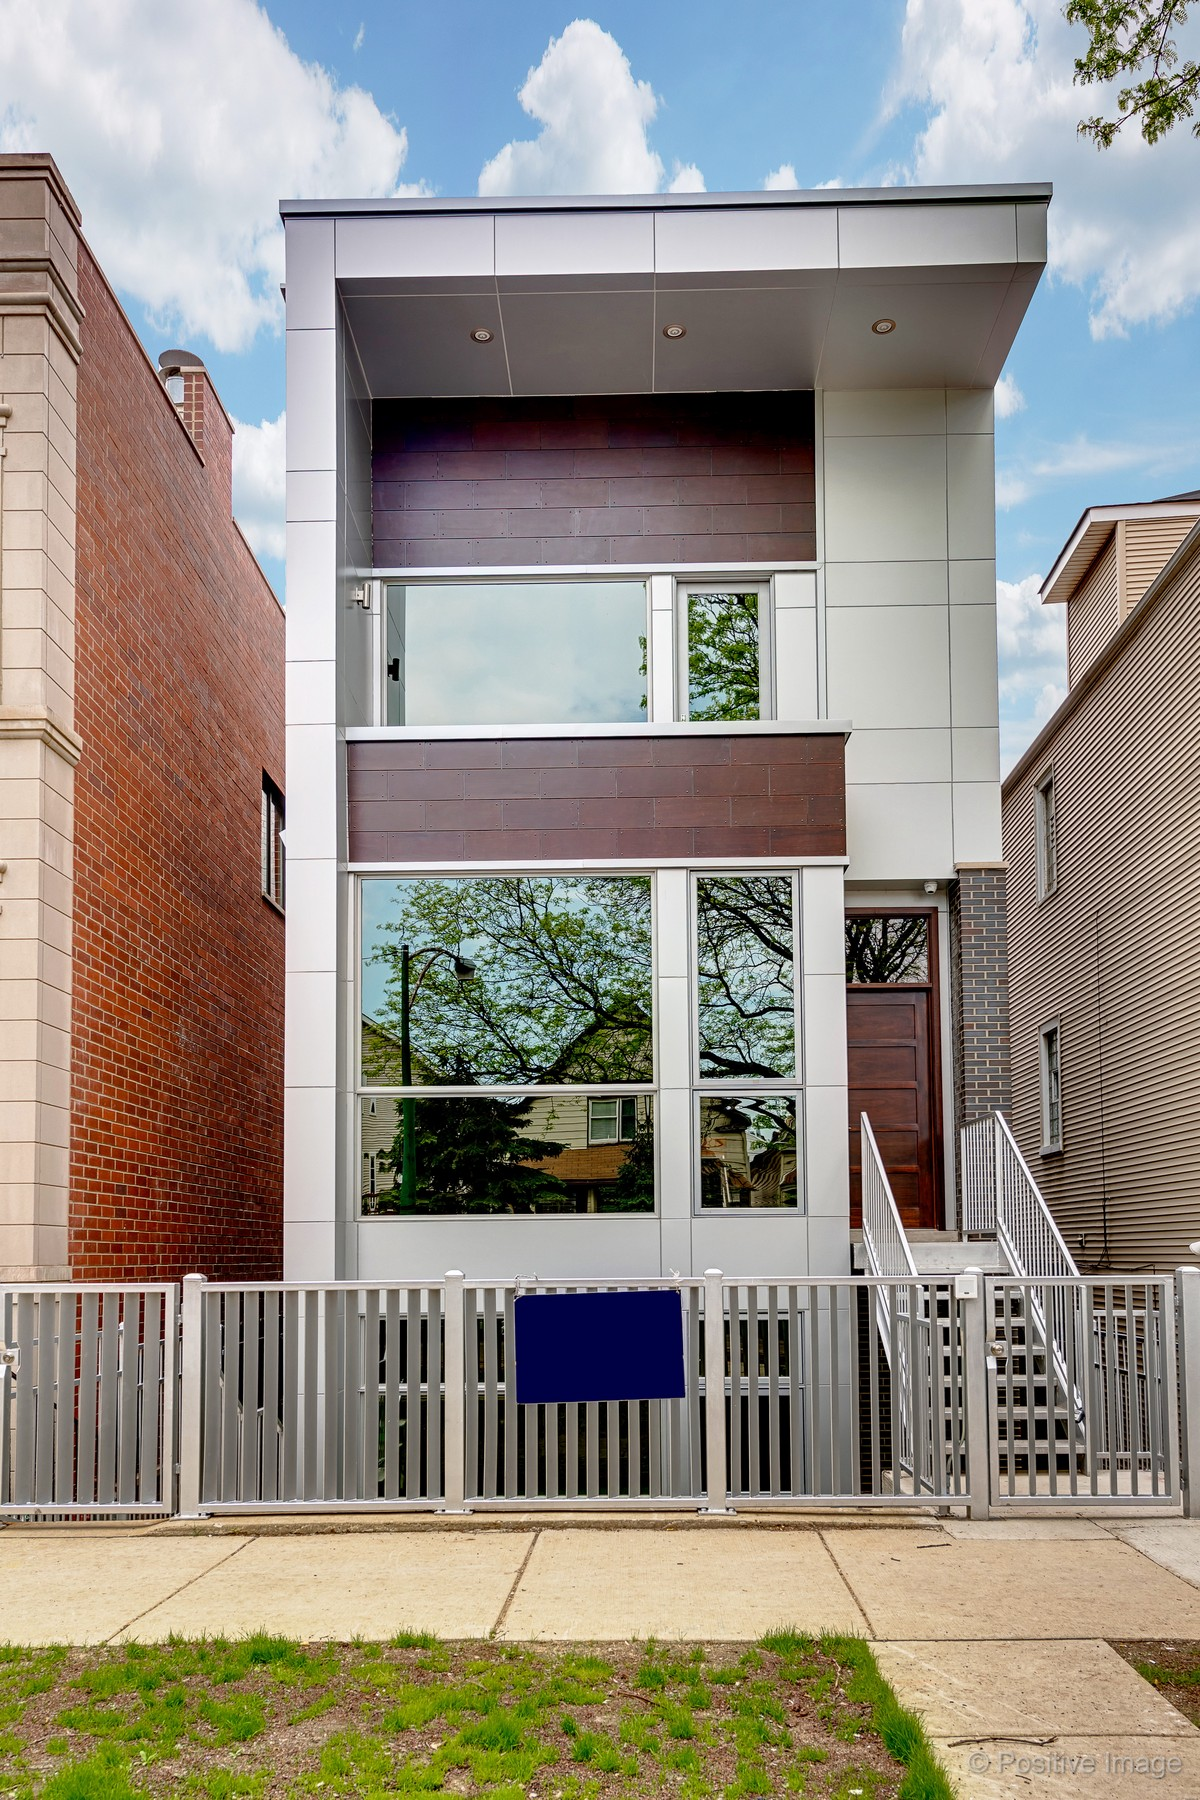 獨棟家庭住宅 為 出售 在 Lakeview New Construction Single Family Home in Burley School District! 1419 W Oakdale Avenue Lakeview, Chicago, 伊利諾斯州, 60657 美國